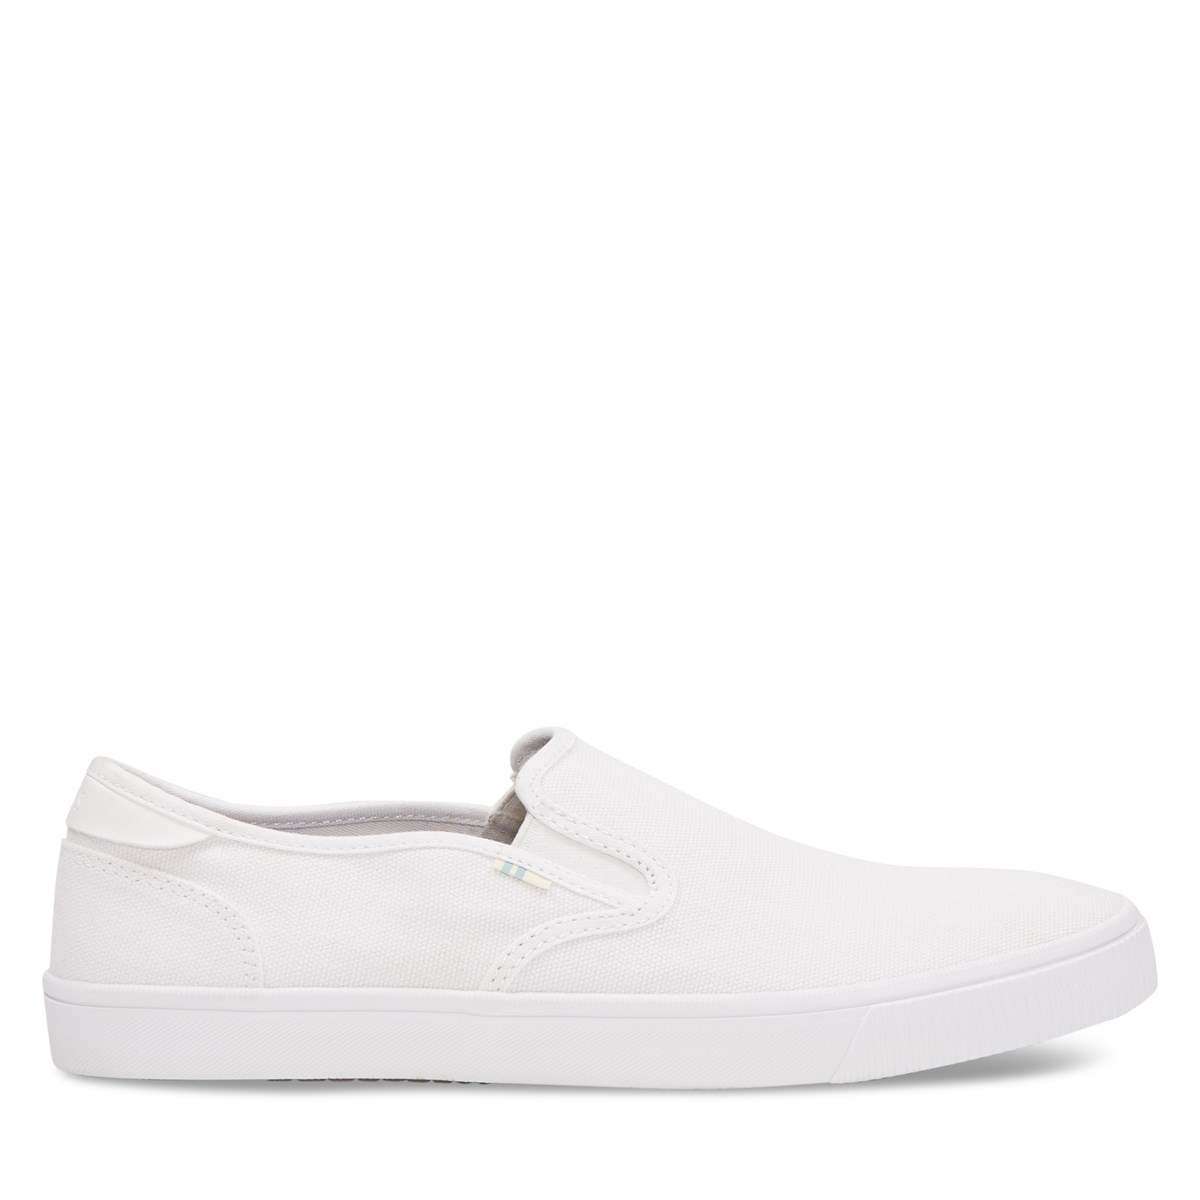 Chaussures Baja Slip-Ons blanches pour hommes